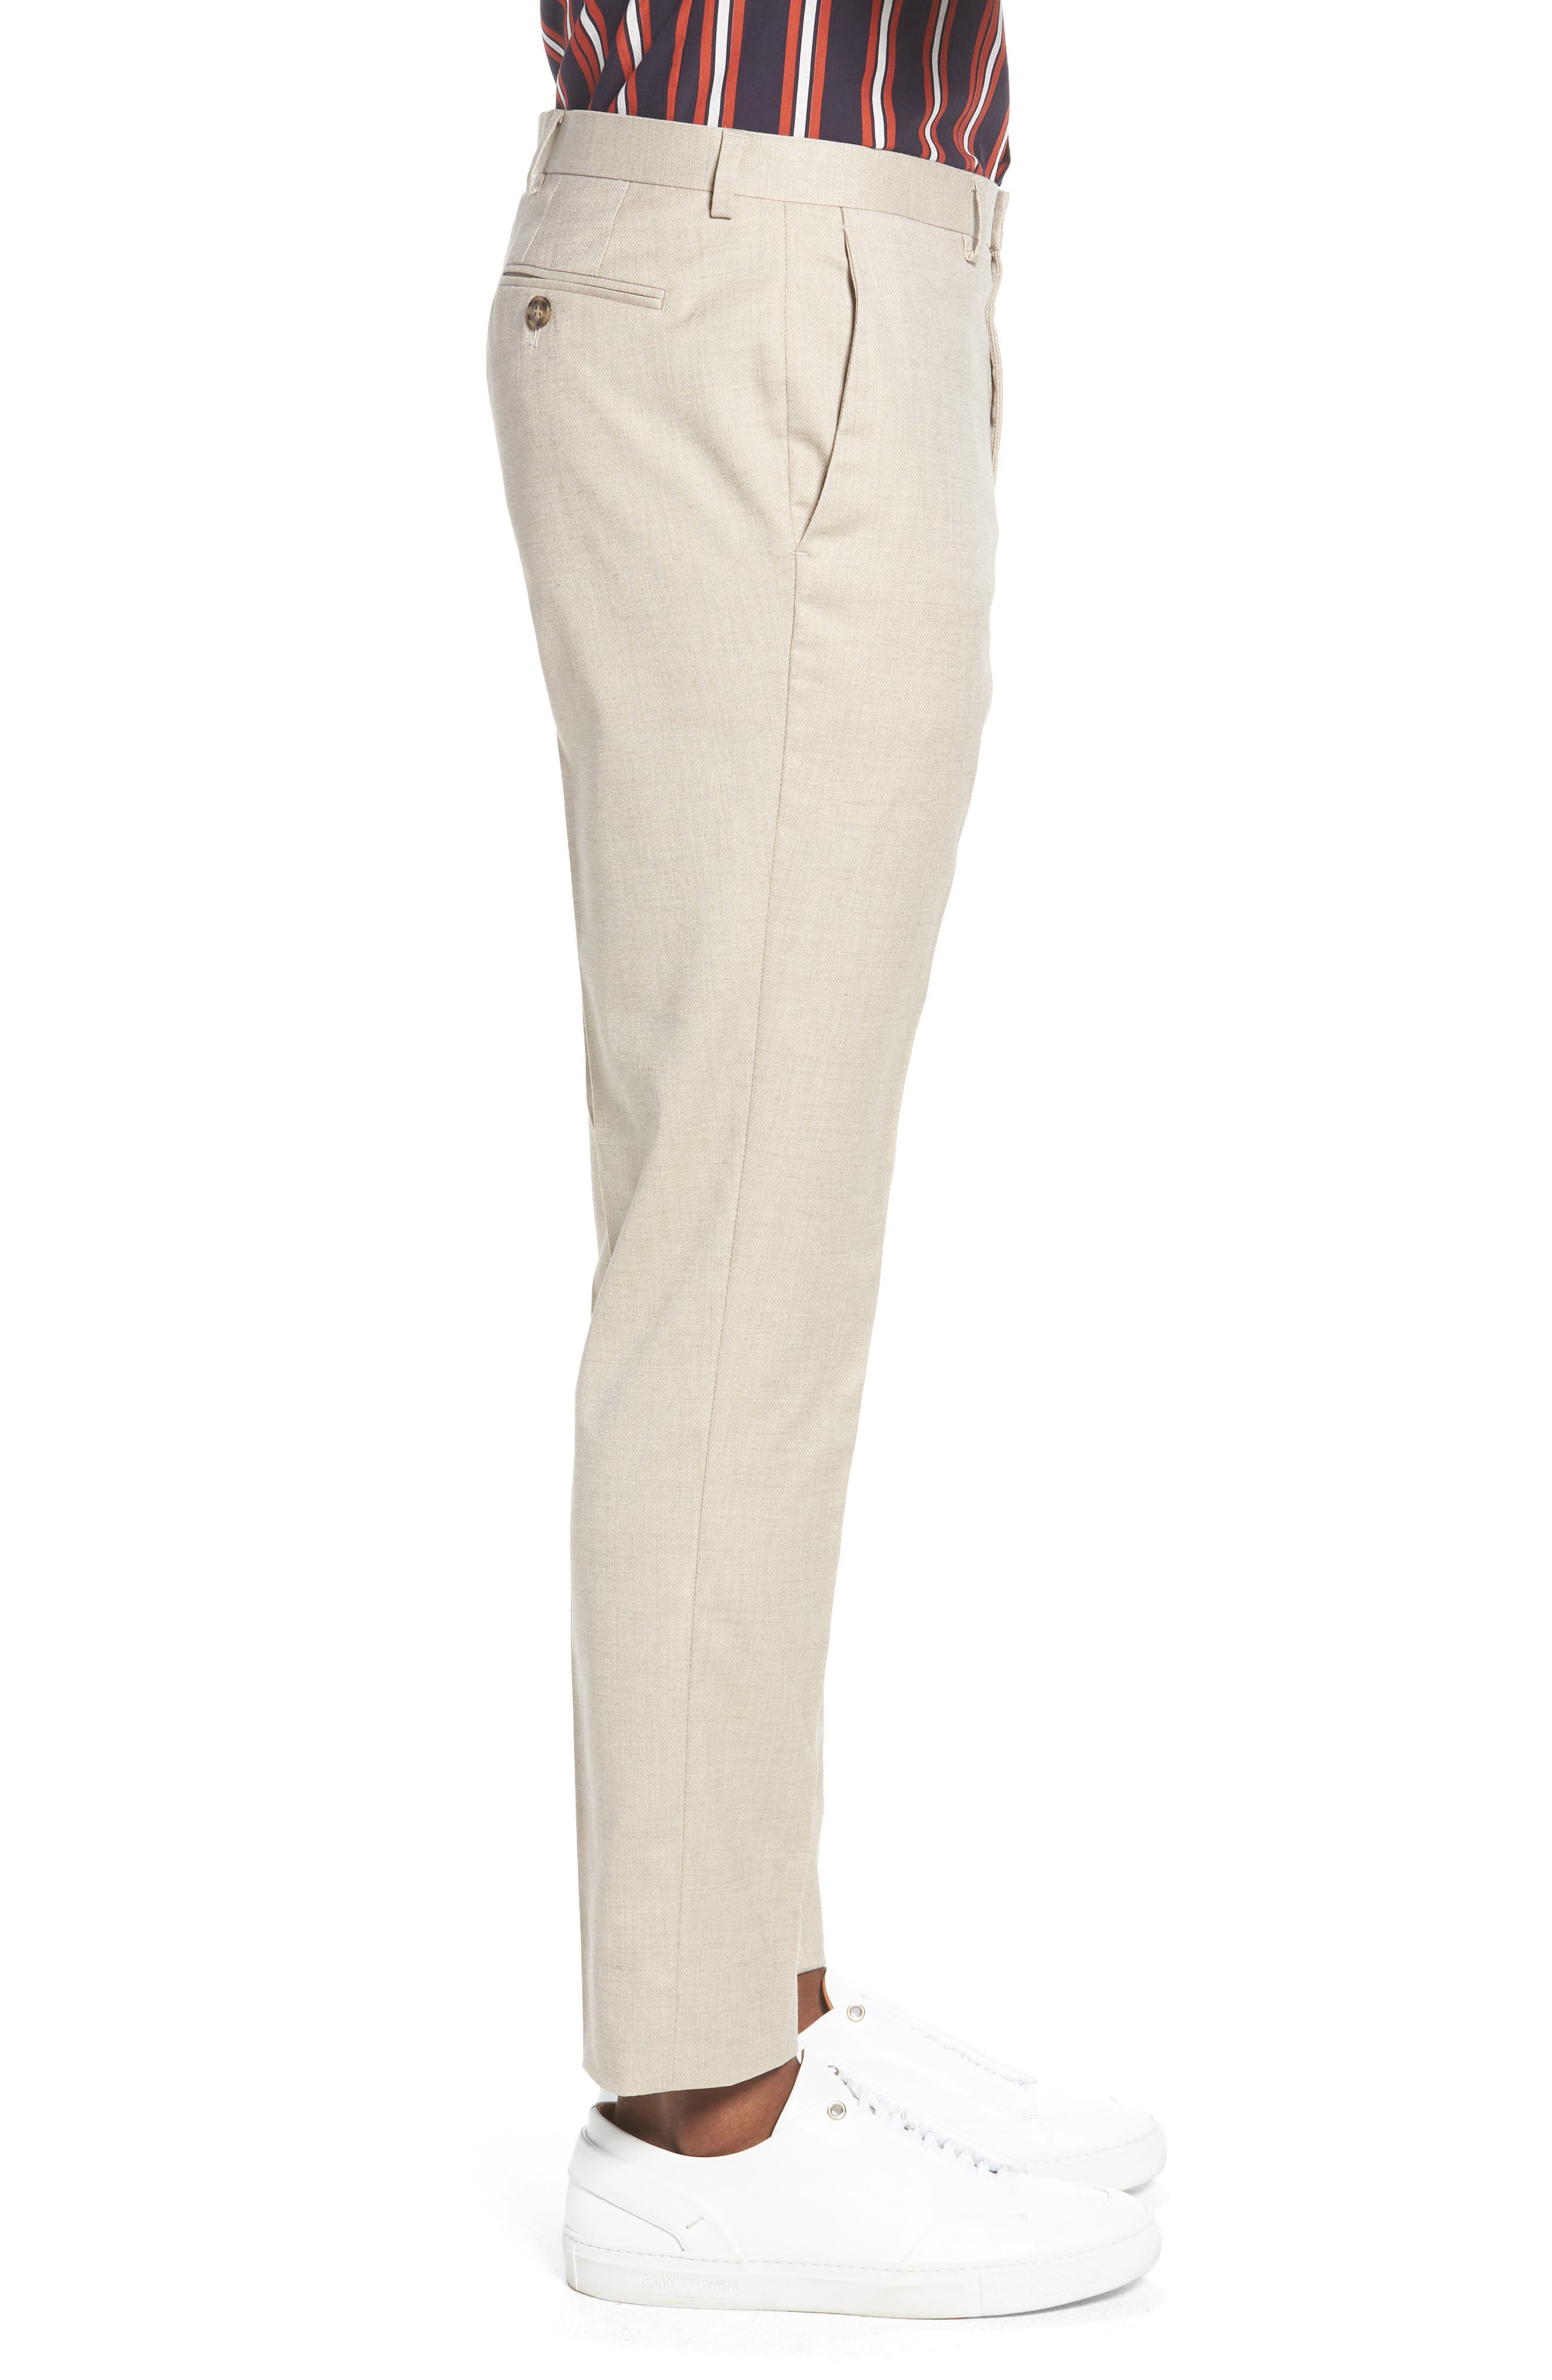 Skinny Fit Suit Trousers,                             Alternate thumbnail 3, color,                             Stone